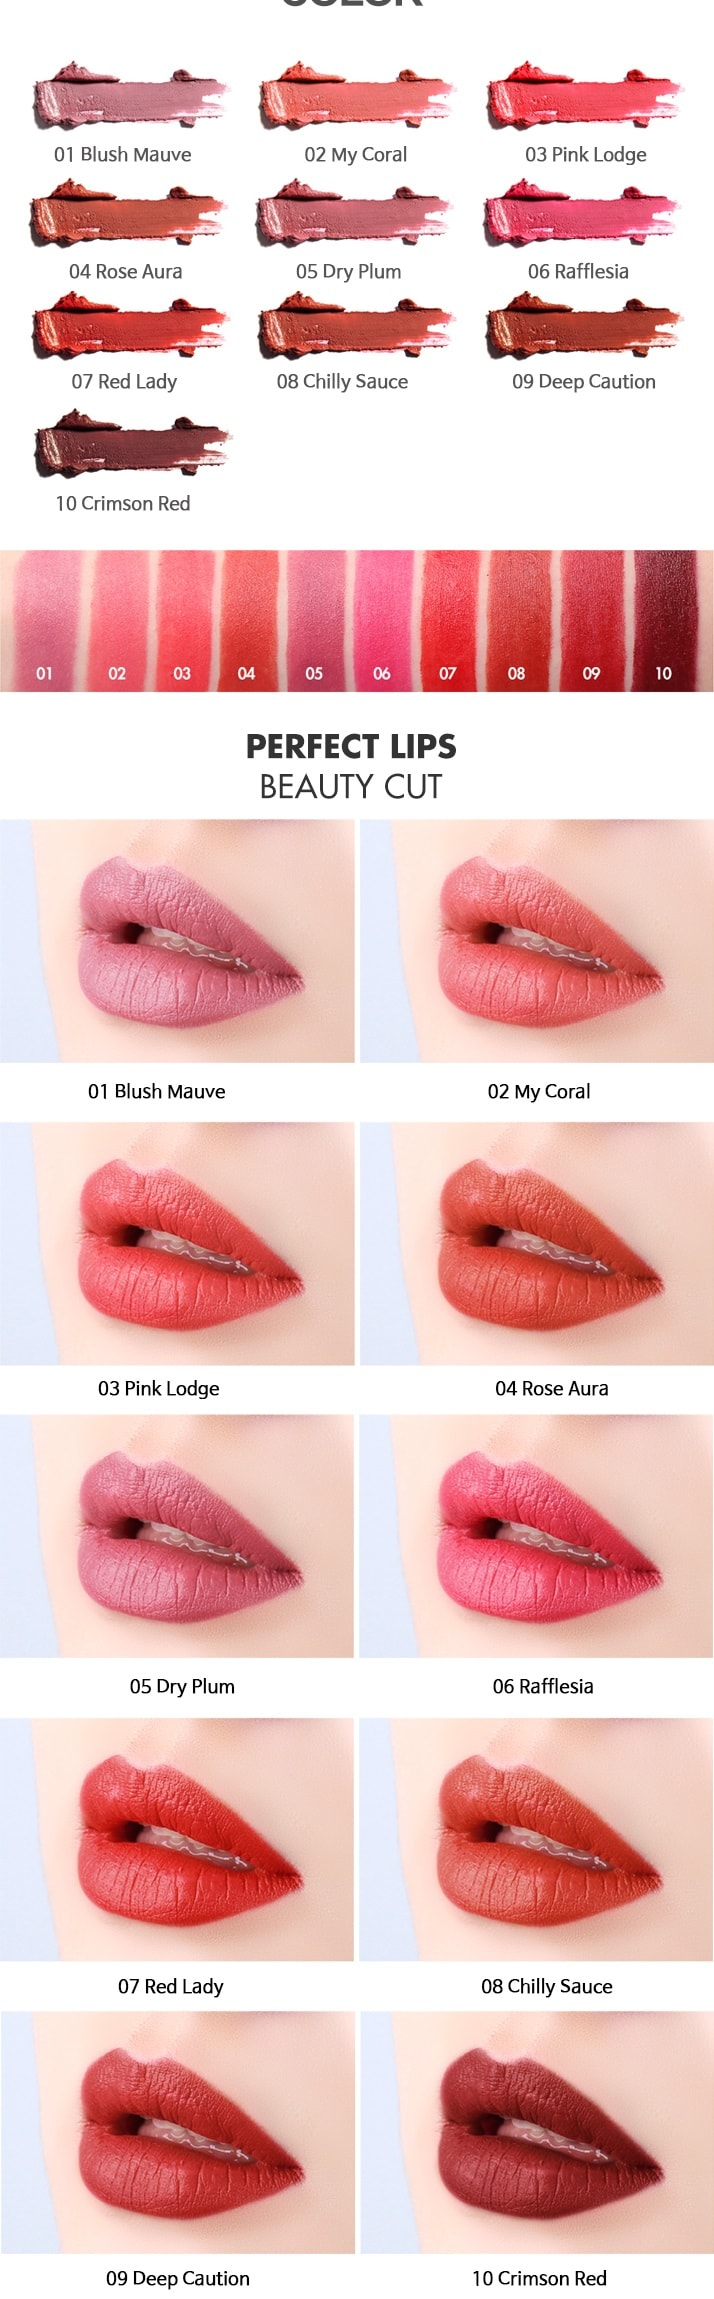 Tony Moly Perfect Lips Curving Lipstick